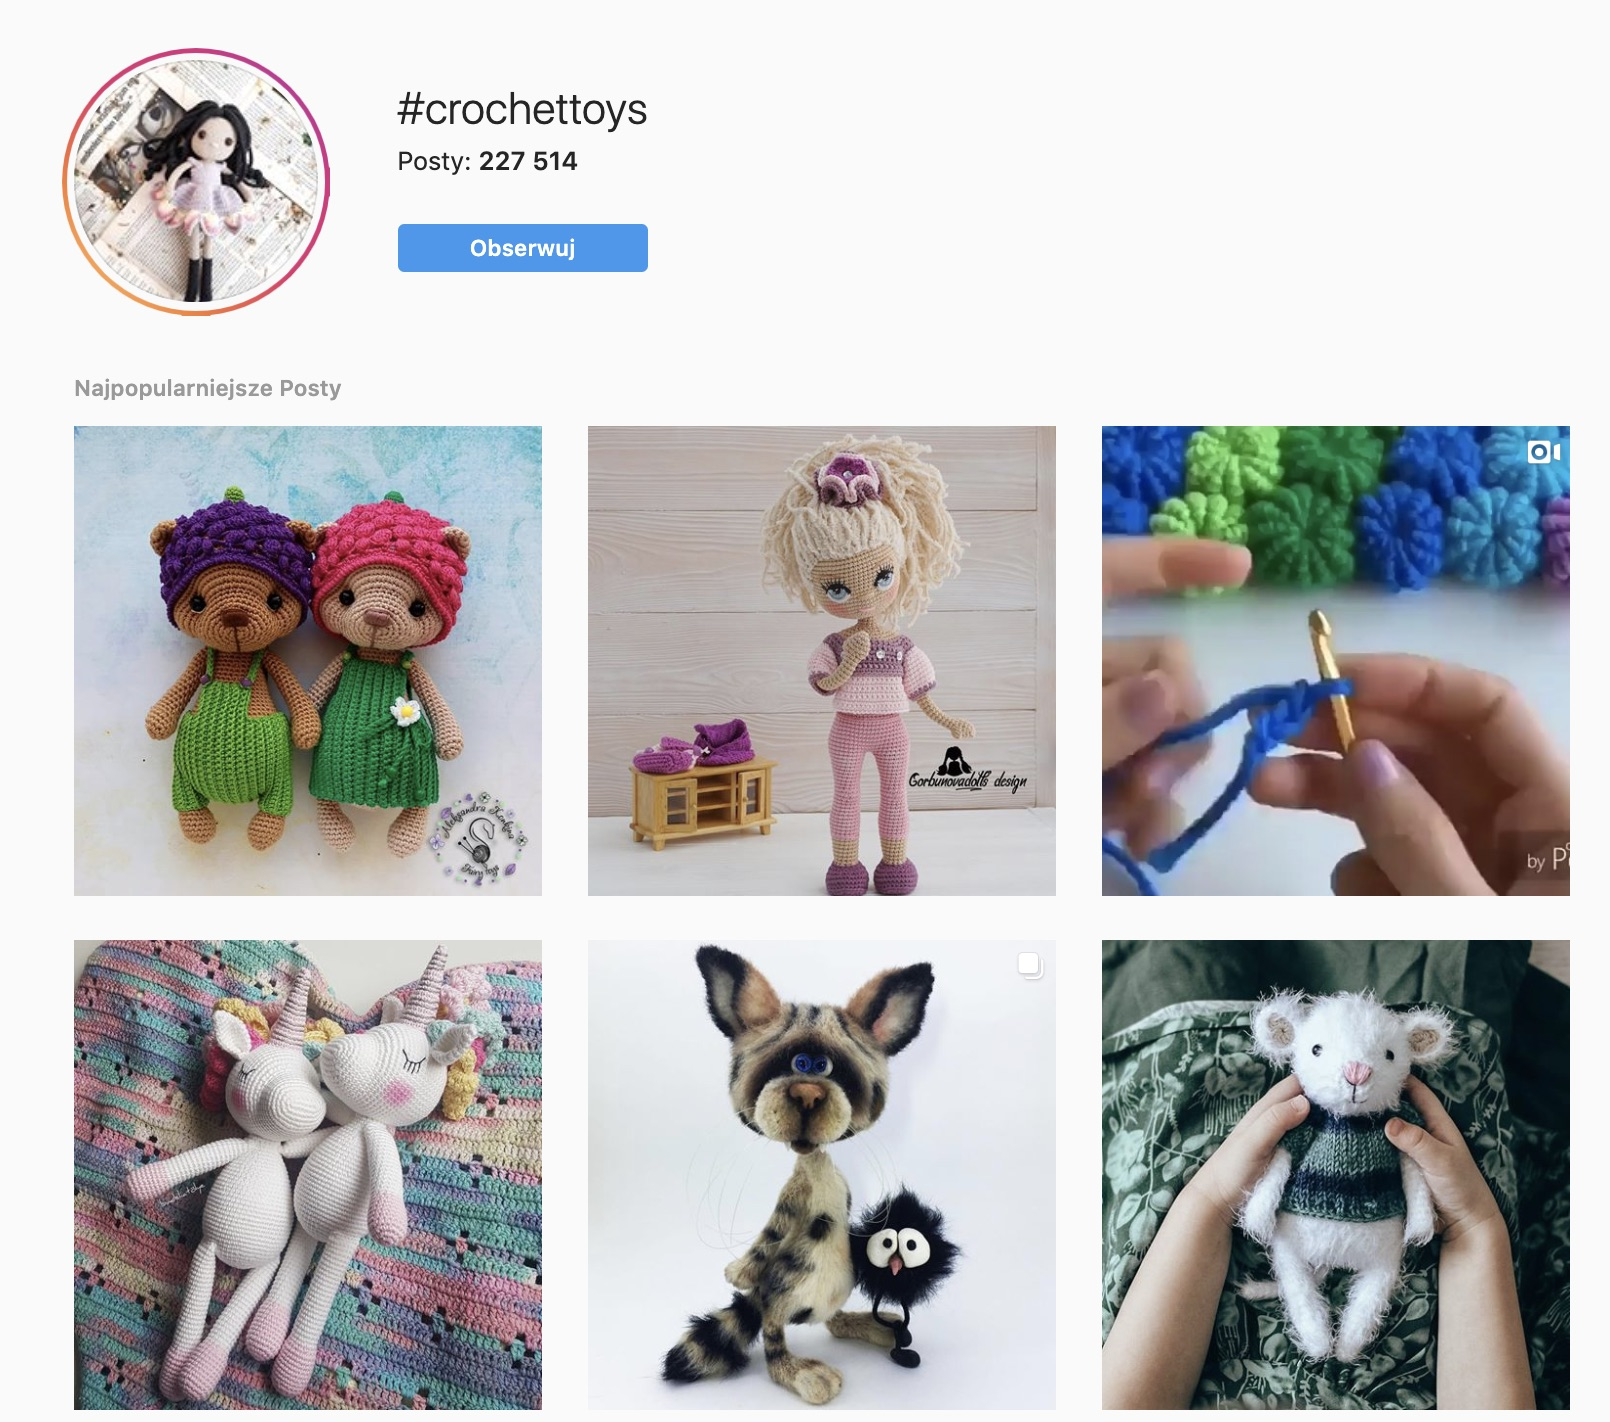 crochettoys instagram